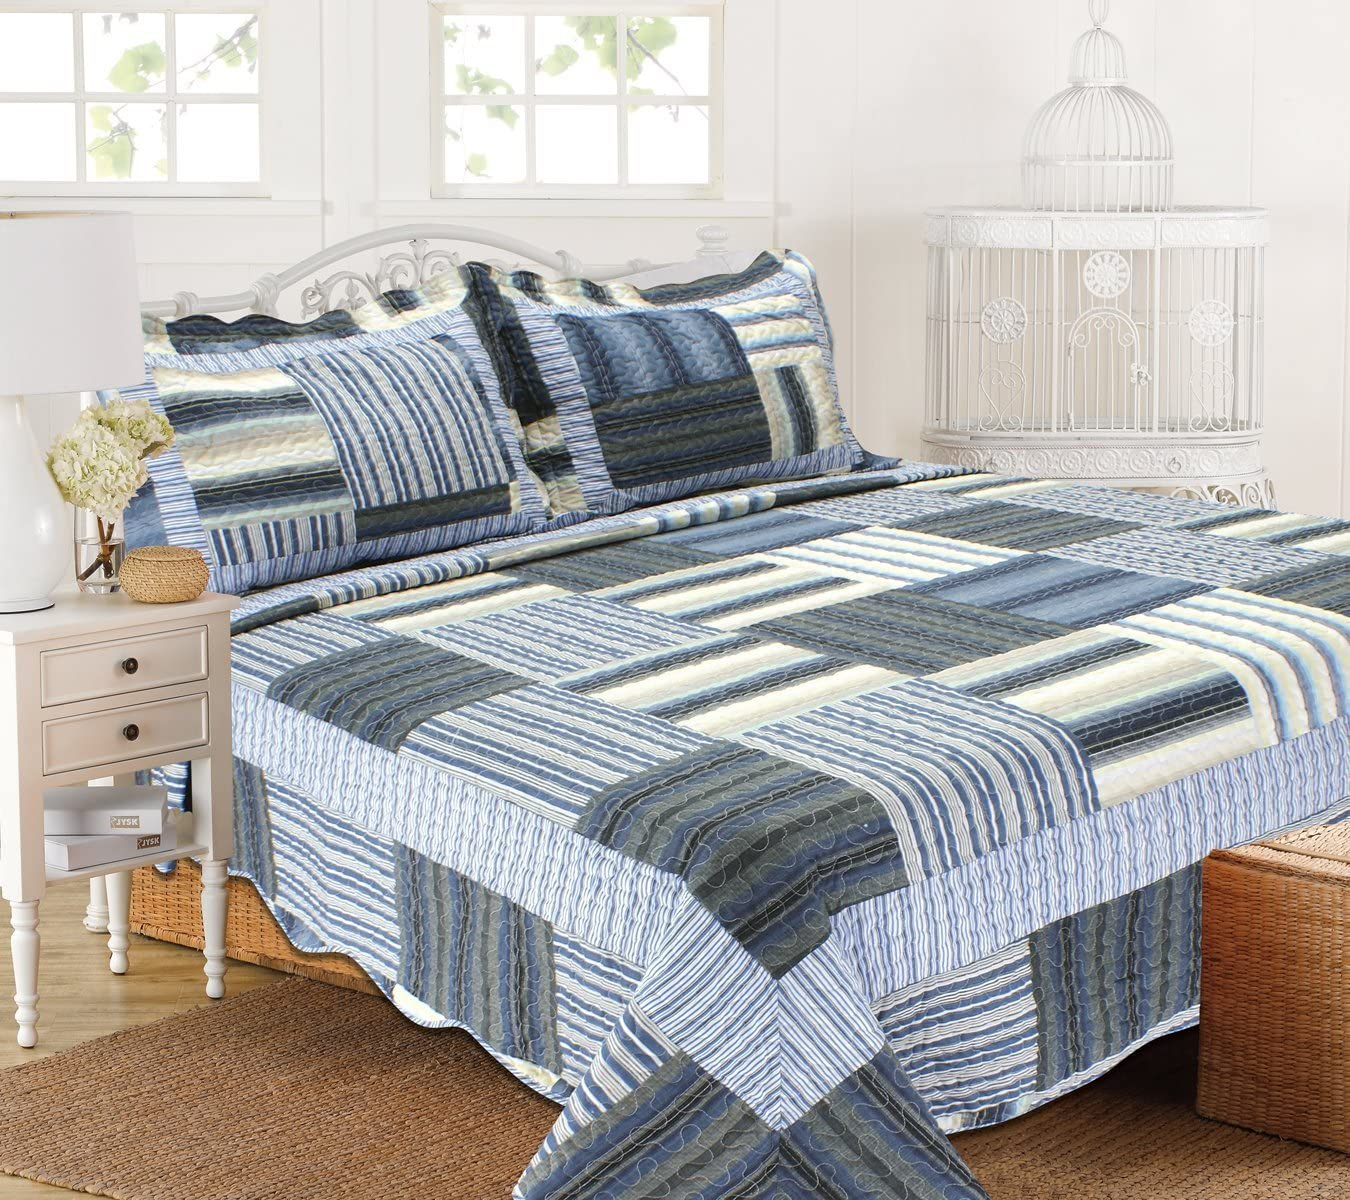 ALL FOR YOU 3pc Reversible Quilt Set, bedspread, coverlet-reversible-antique/classic blue patchwork print (full/queen)